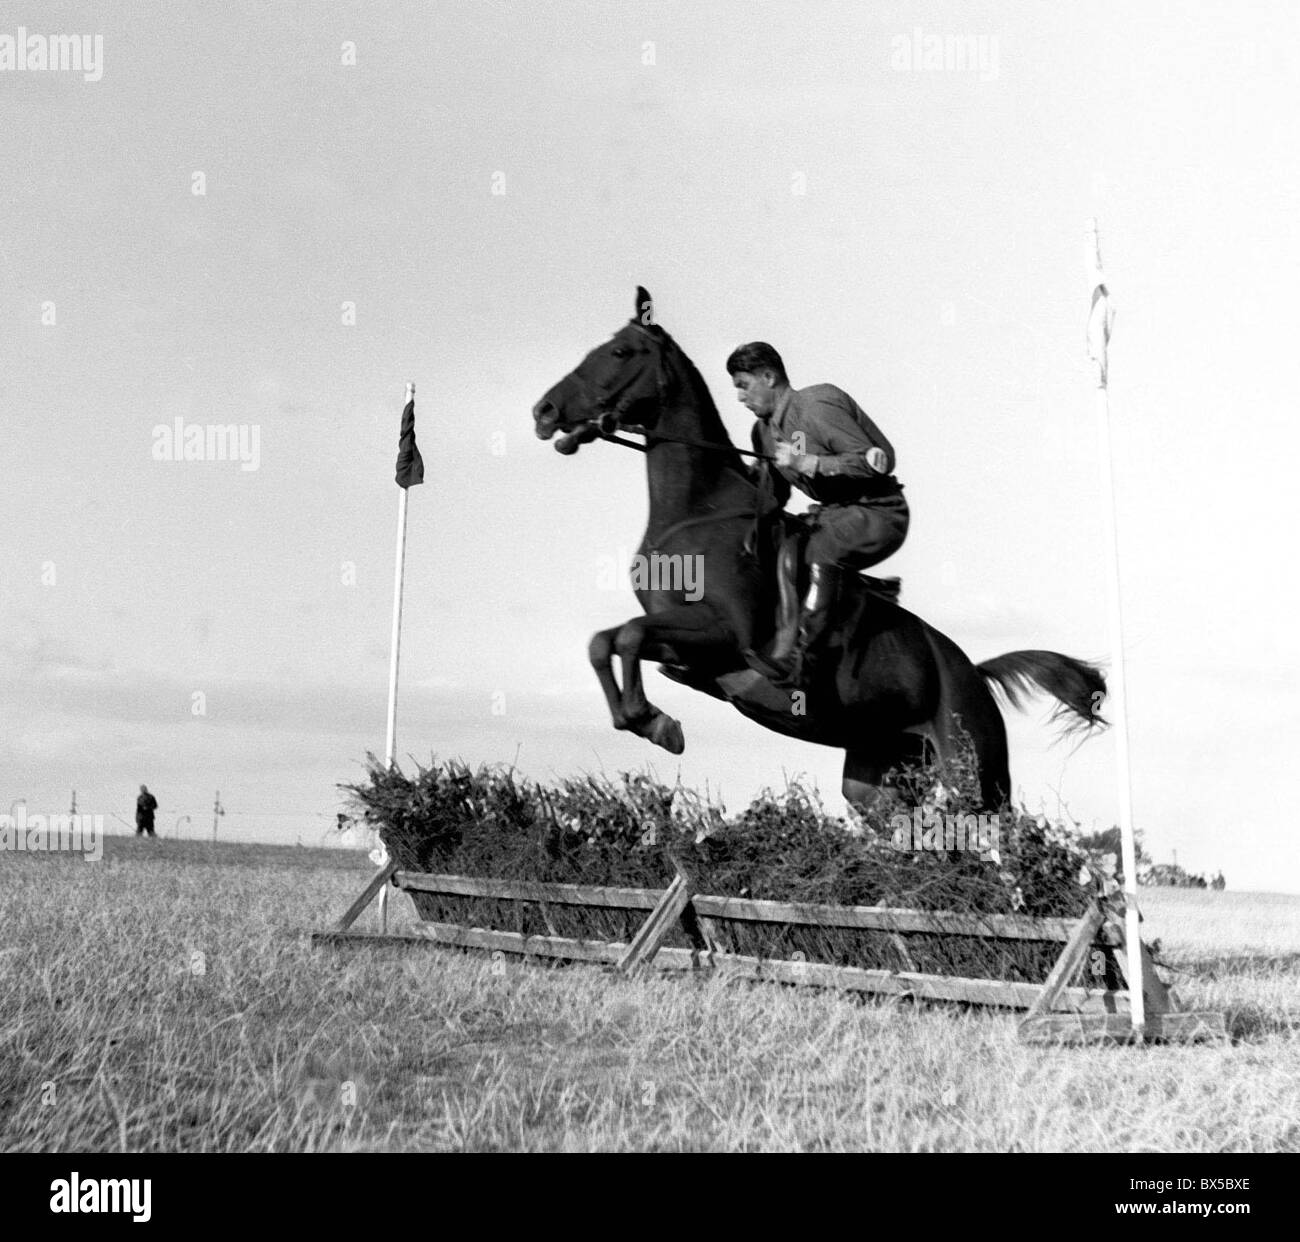 Prague 1947, horse with rider jump over obstacle during race